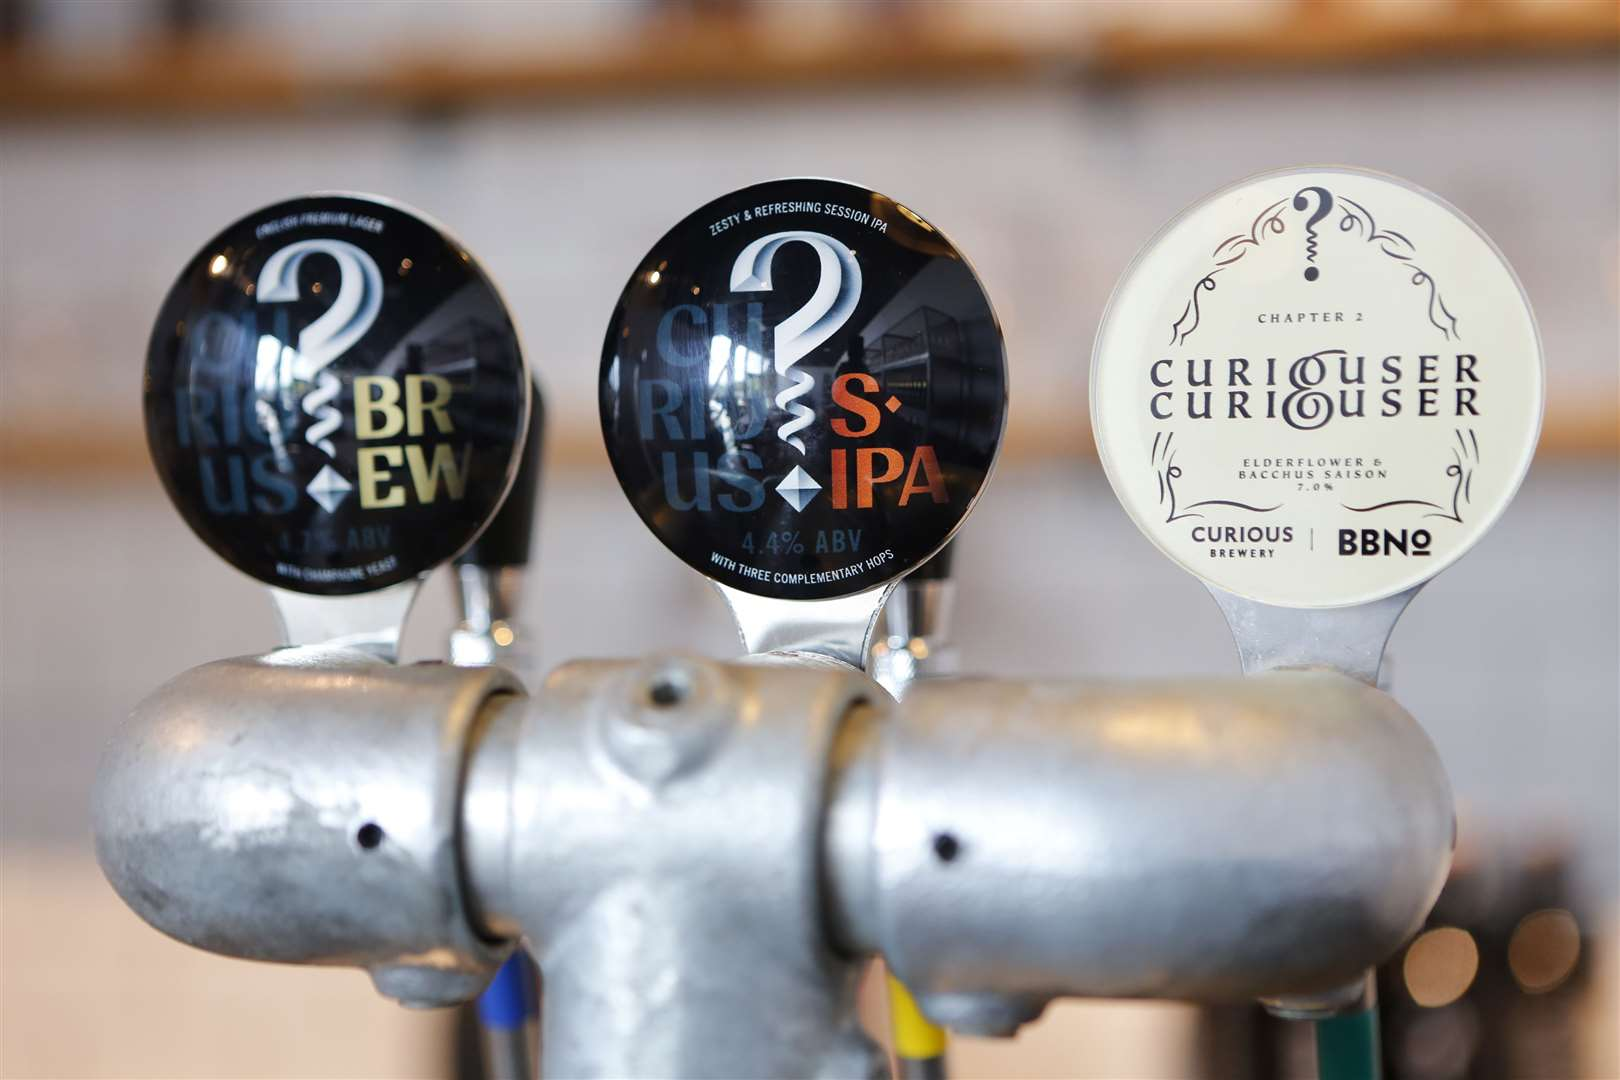 The facility will allow Curious Brew to experiment with new drinks. Picture: Andy Jones